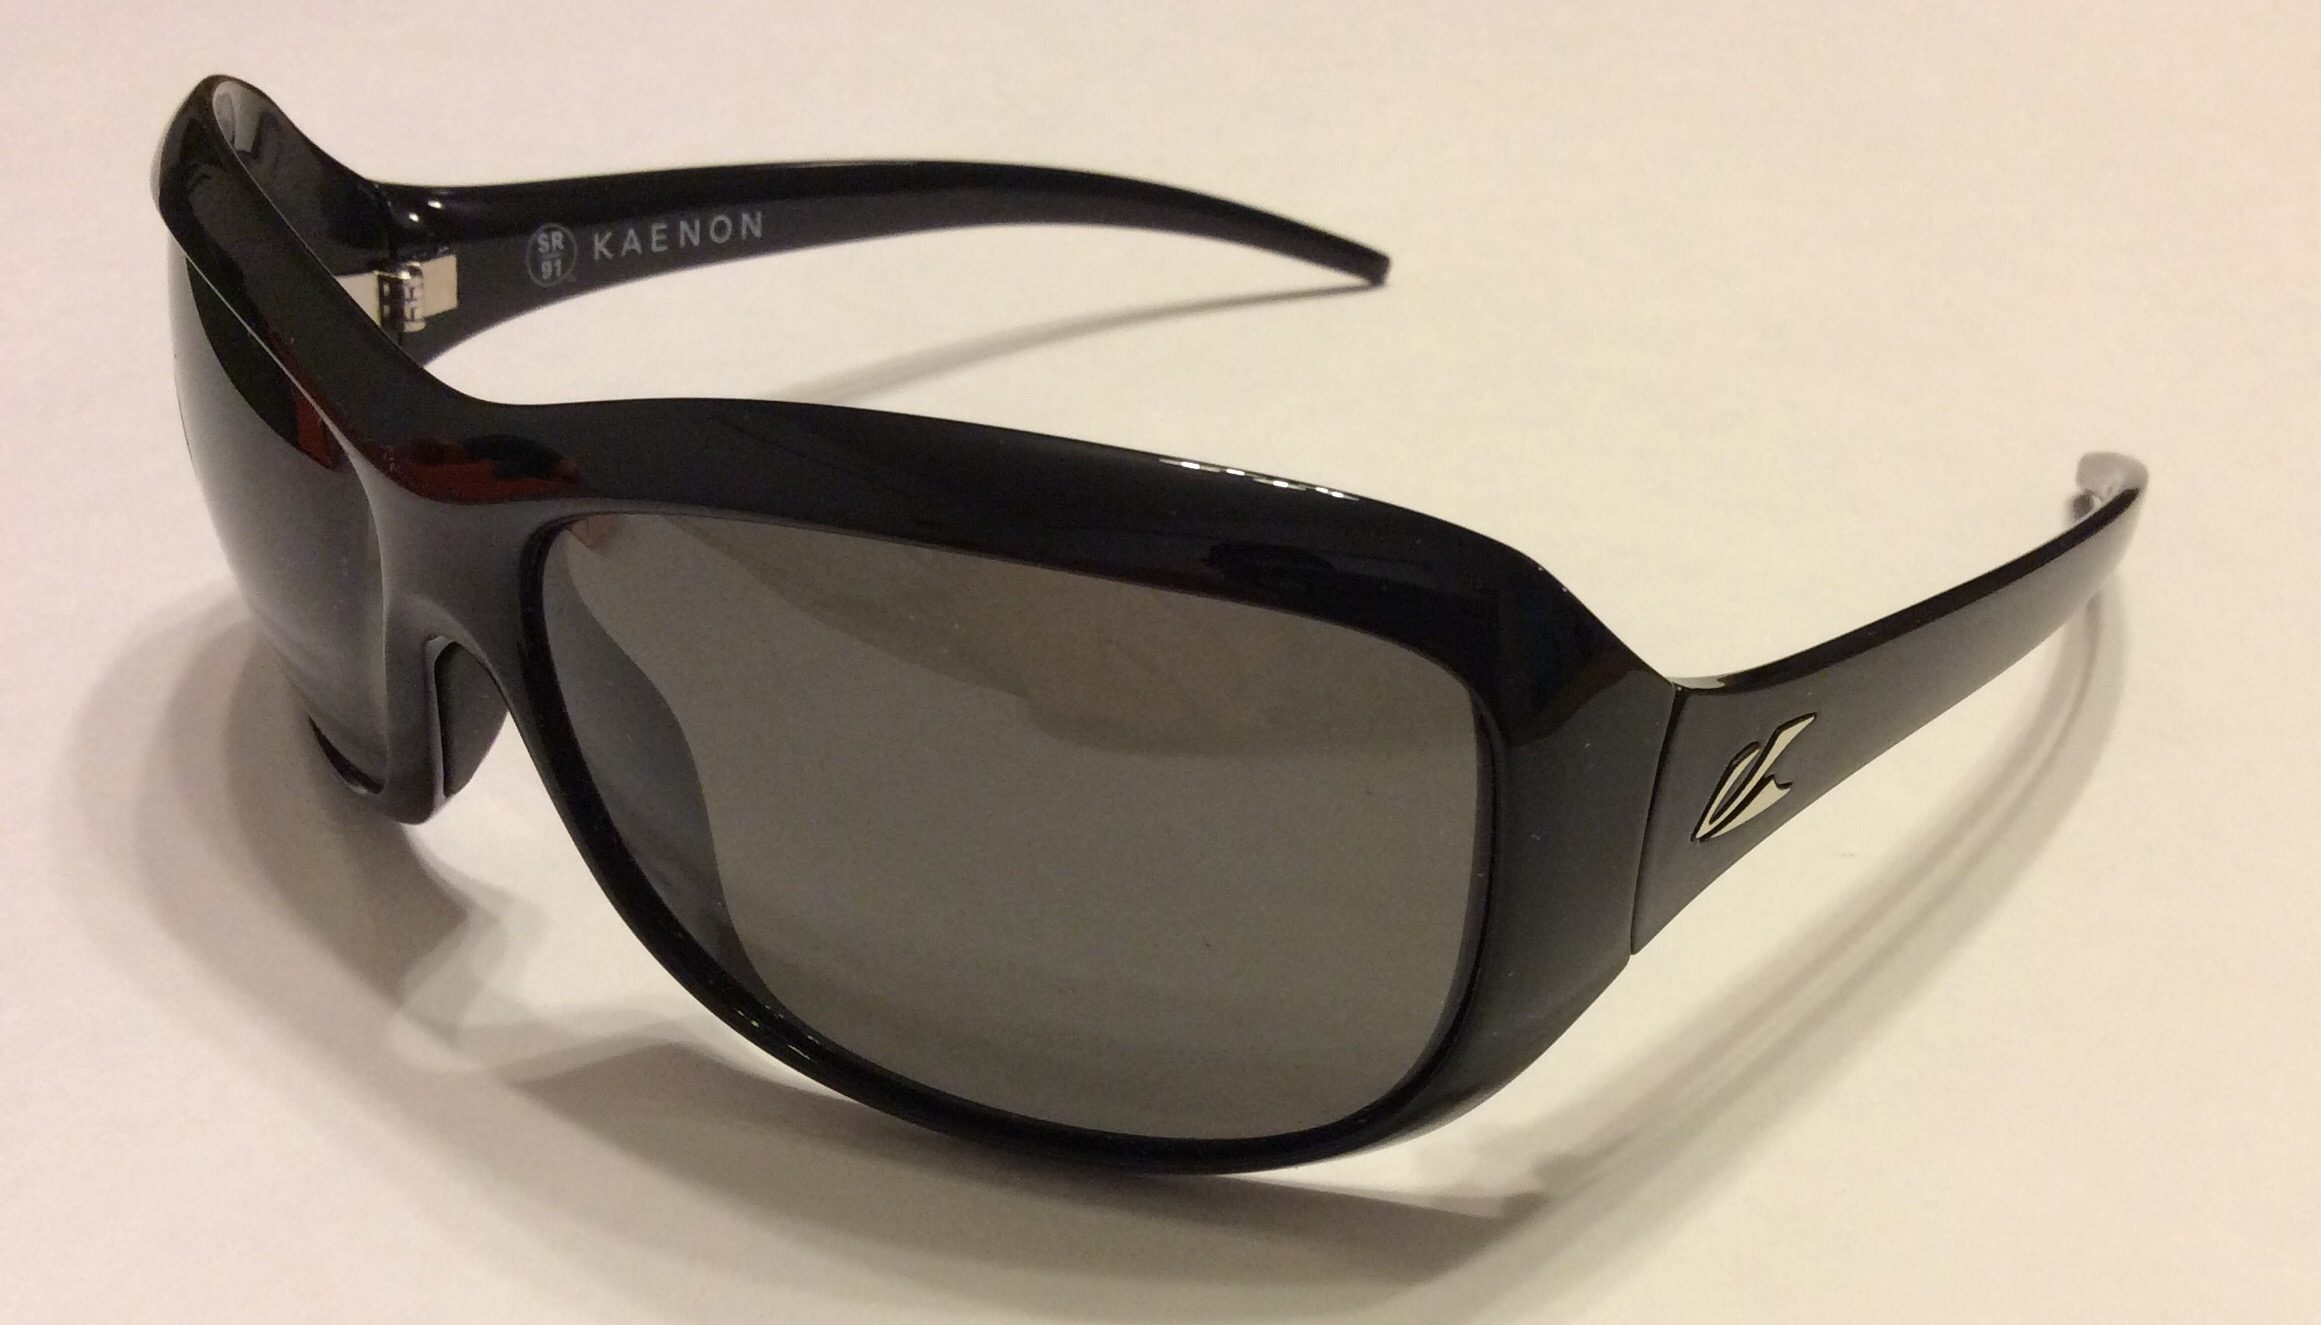 Kaenon Madison Sunglasses - Black - G12 Grey POLARIZED 214-01-G12